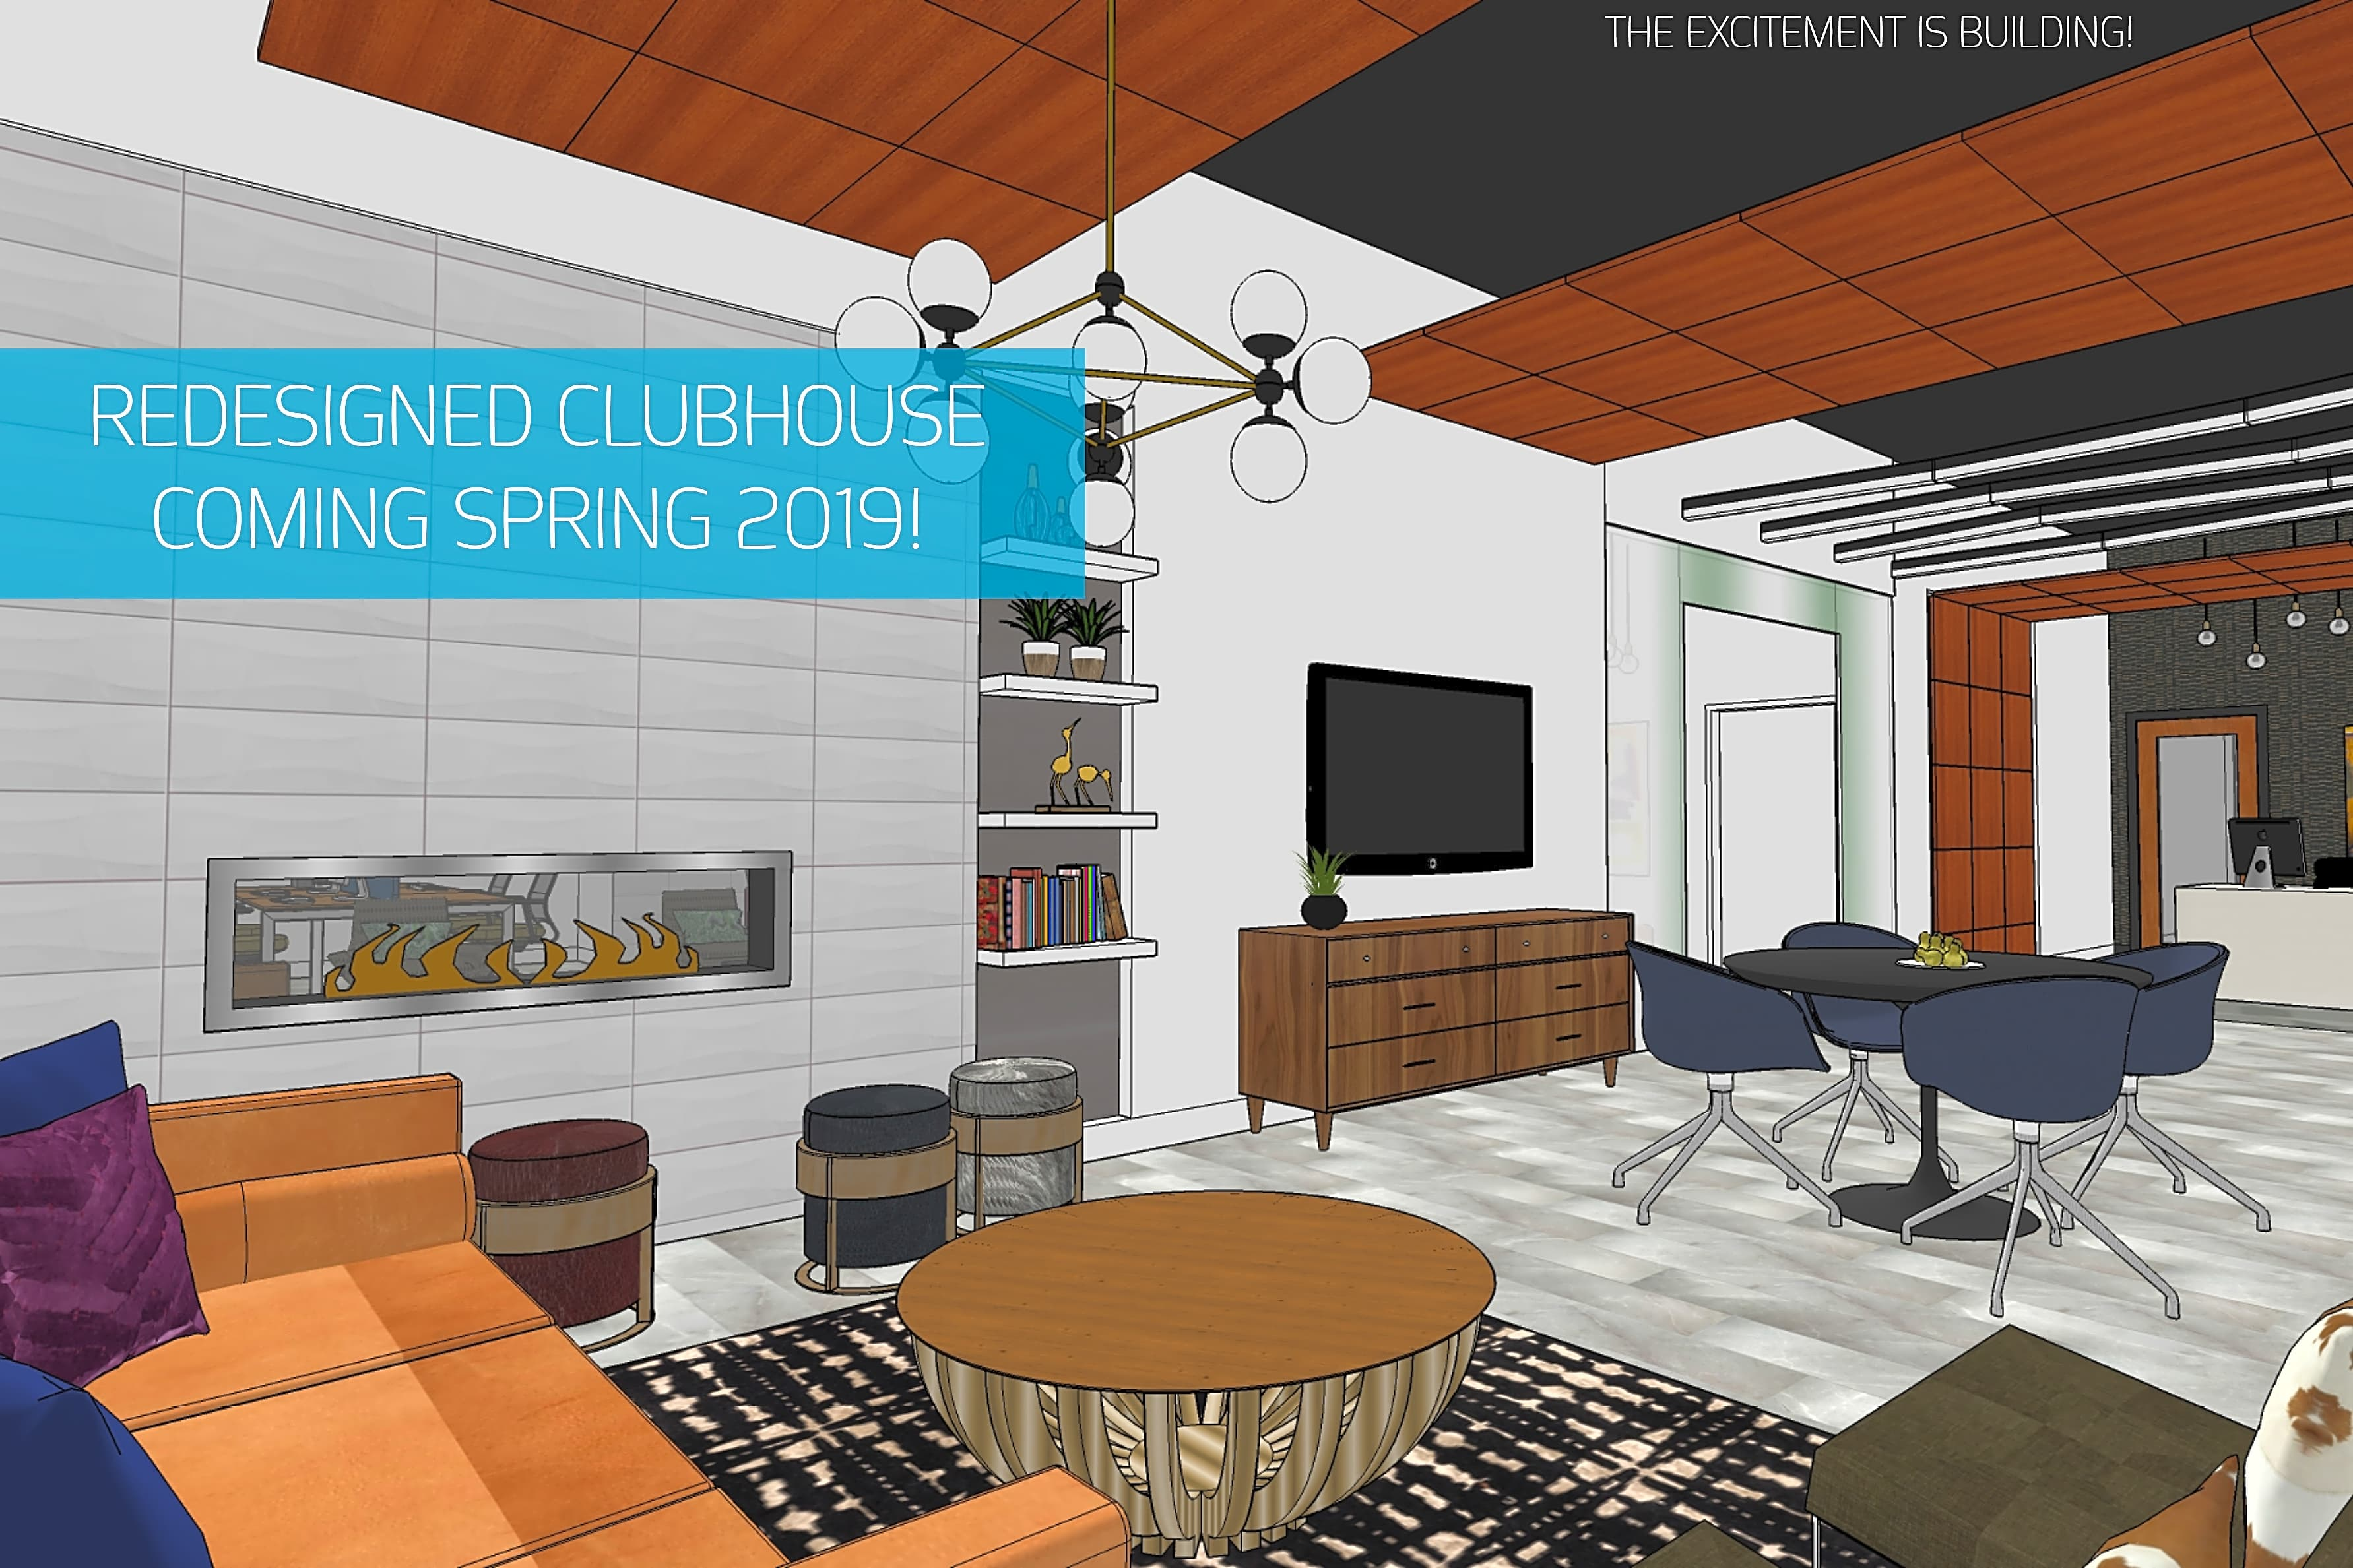 REDESIGNED CLUBHOUSE COMING EARLY 2019!